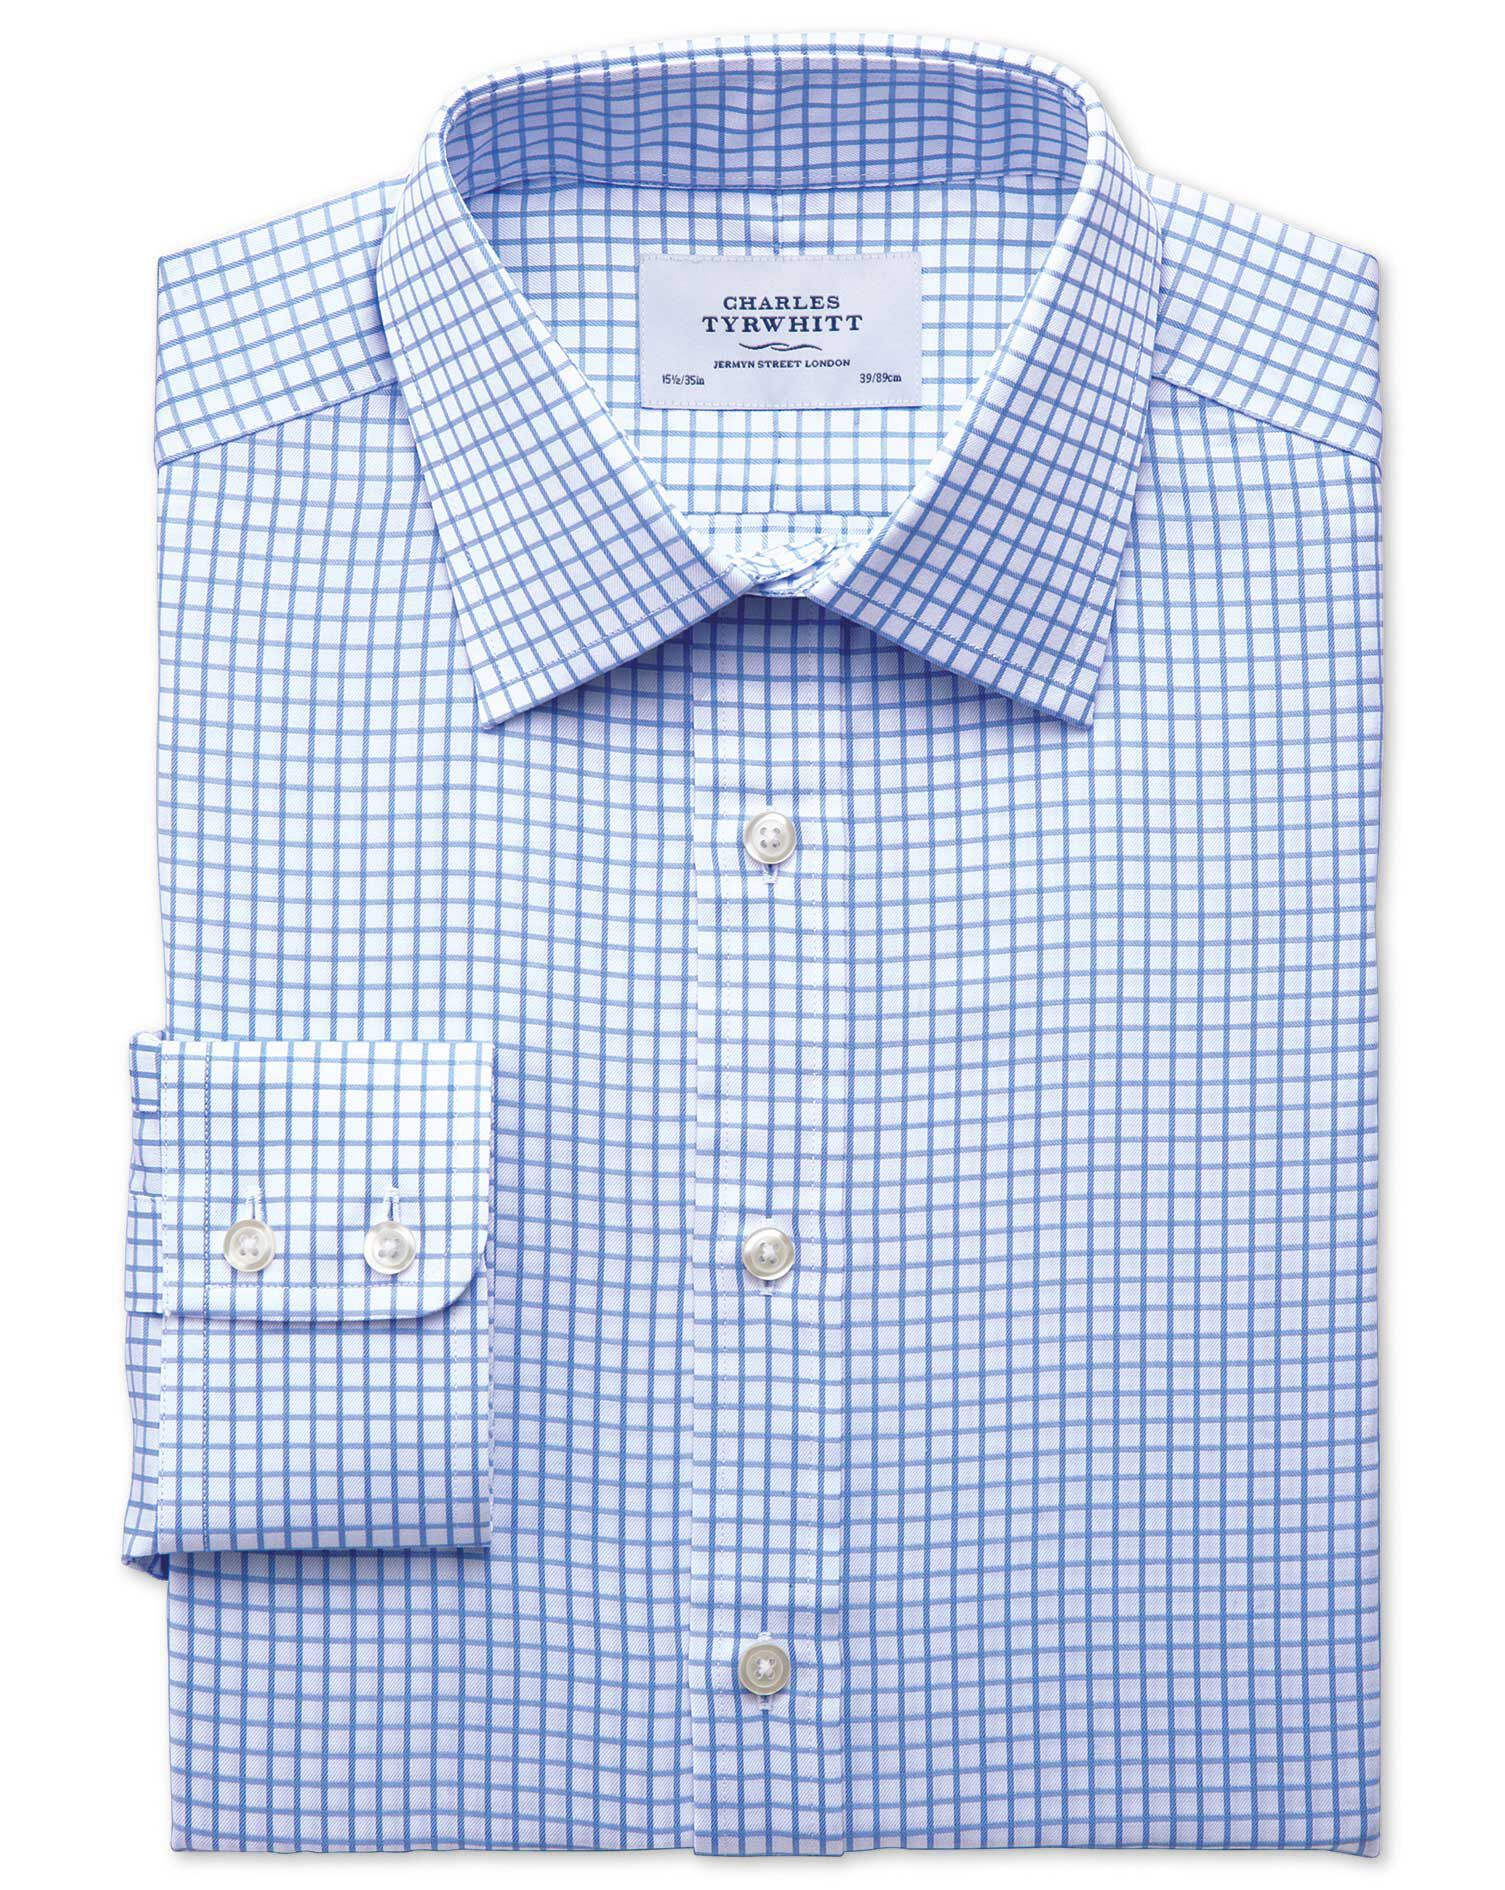 Classic Fit Twill Grid Check Sky Blue Cotton Formal Shirt Single Cuff Size 18/36 by Charles Tyrwhitt